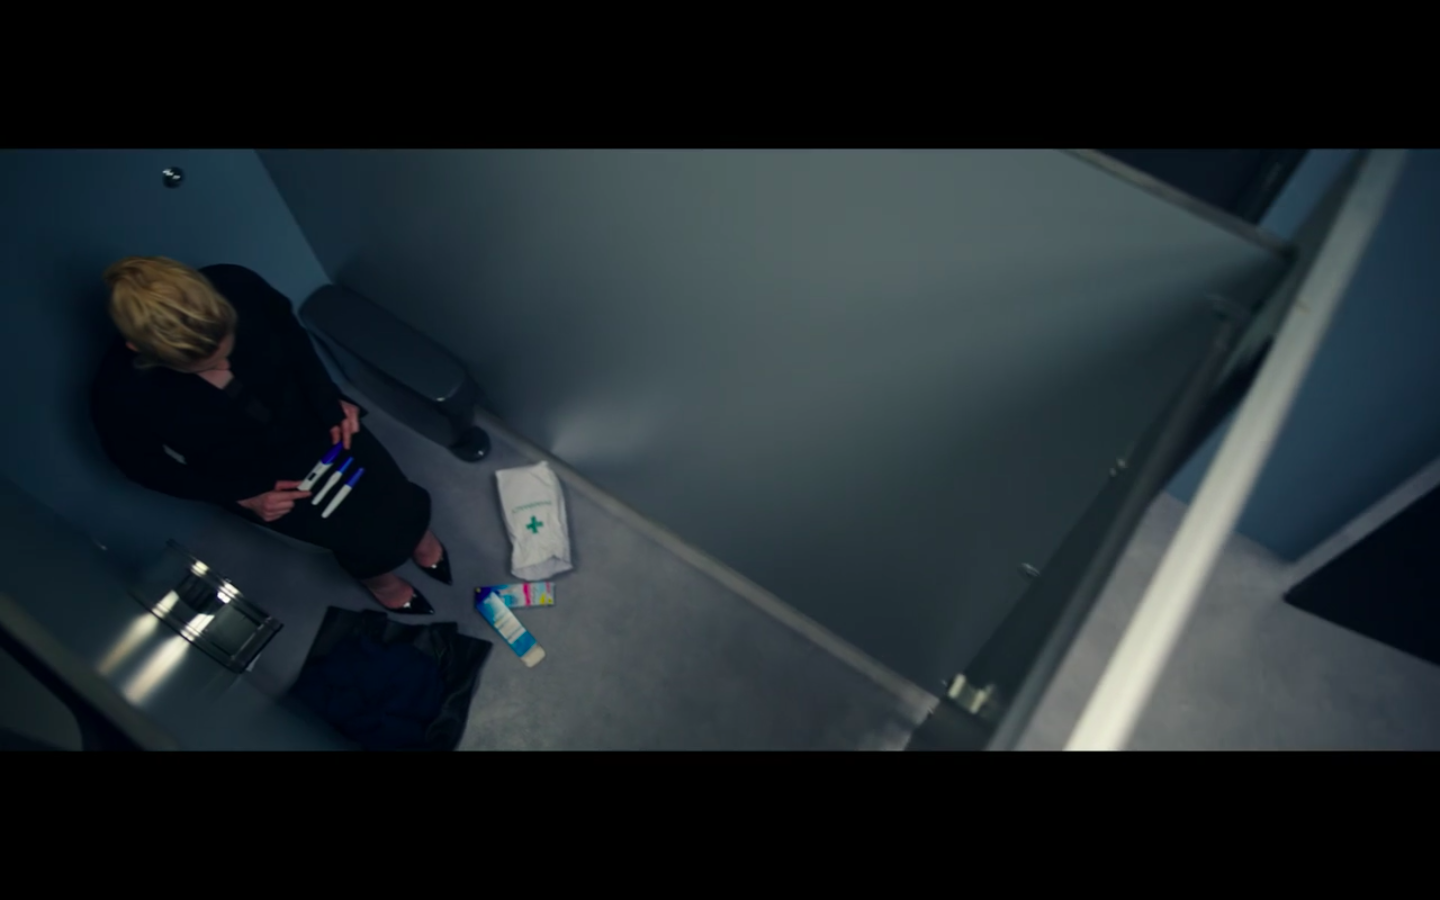 Robyn in a bathroom stall seated on the toilet with several pregnancy tests lined up on her lap and many empty boxes on the floor around her at her feet.